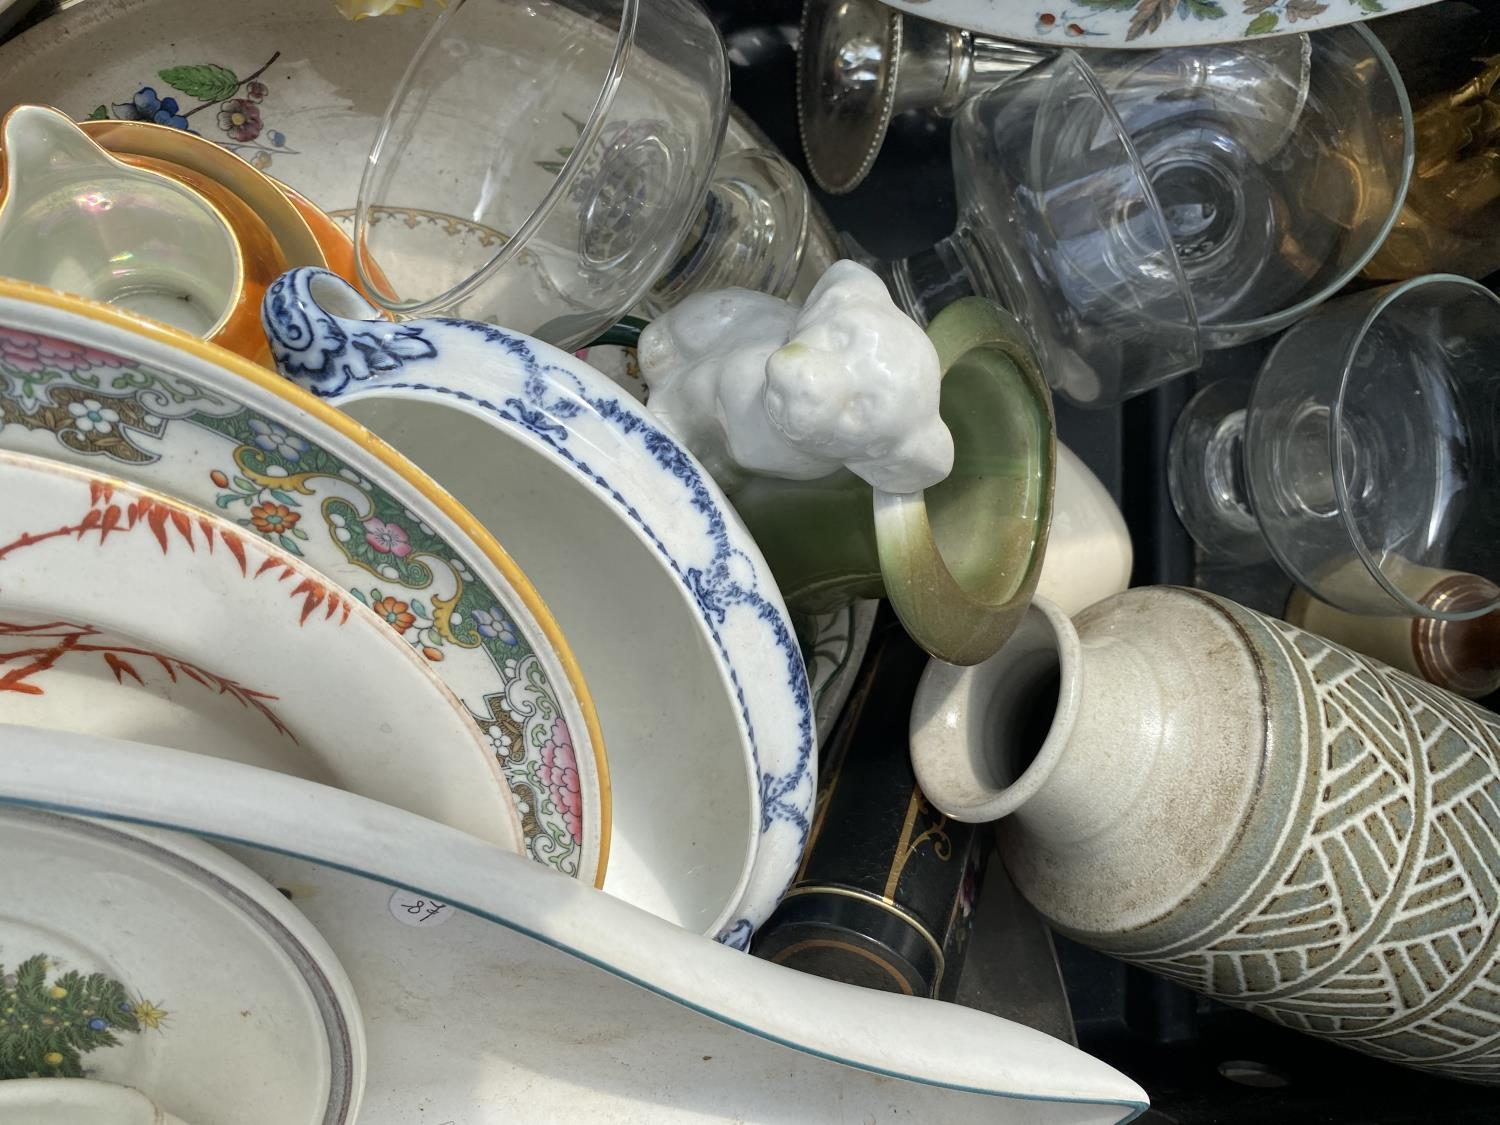 AN ASSORTMENT OF HOUSEHOLD CLEARANCE ITEMS TO INCLUDE CERAMICS AND GLASS WARE ETC - Image 4 of 6